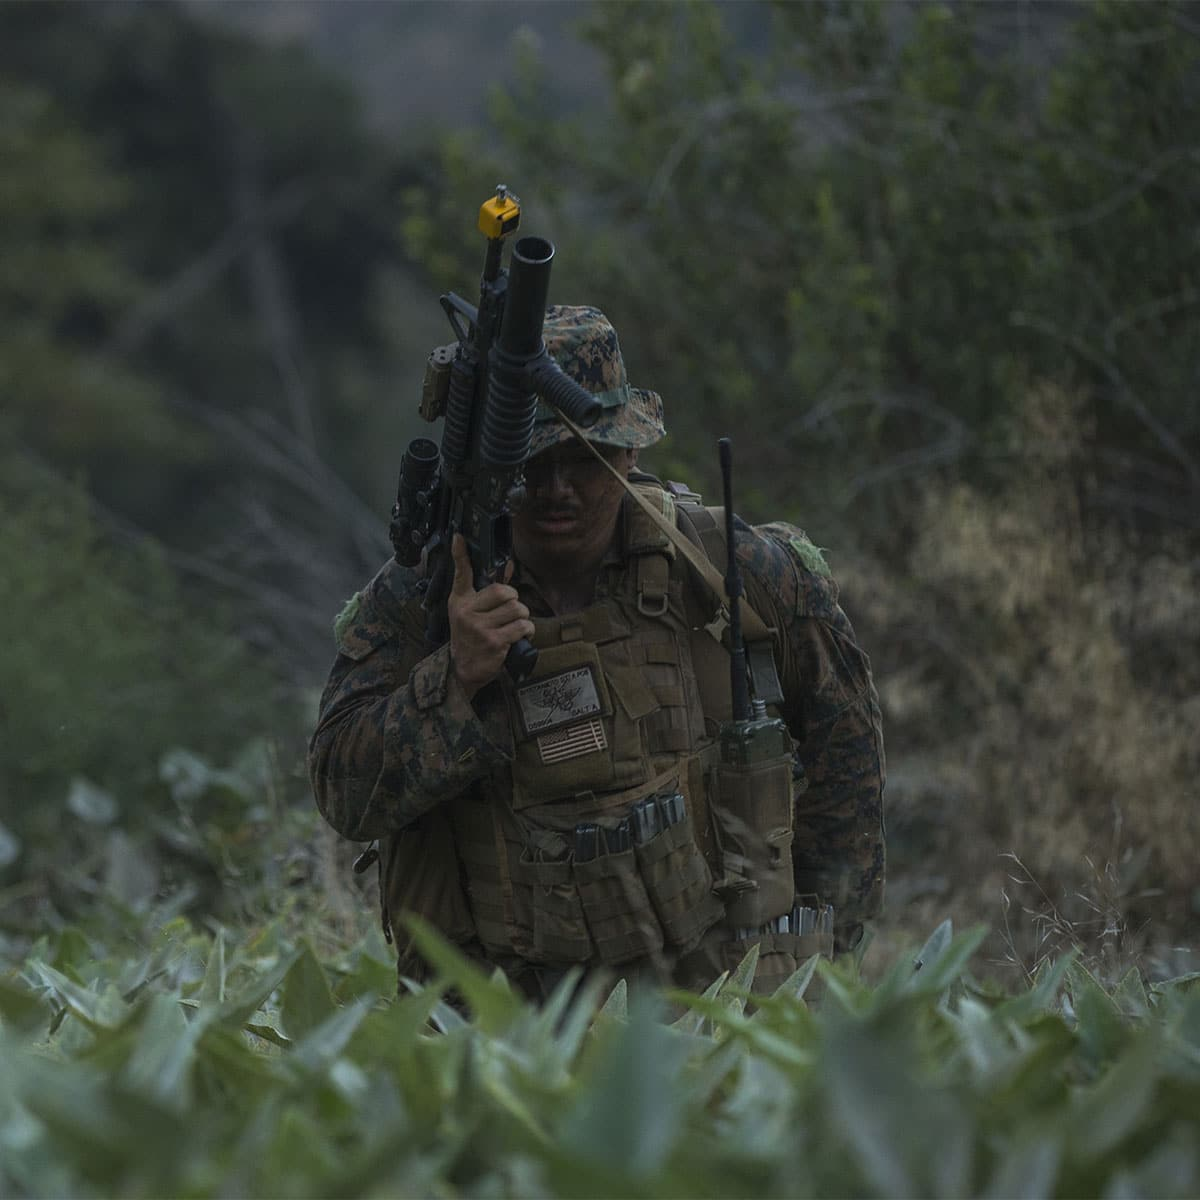 Marine Sgt. David Suyatokamoto, a Marine Corps Fire Control Team Chief, reloads his M16 rifle during a simulated ambush on Camp Pendleton, California. 1st Air Naval Gunfire Liaison Company is conducting training to prepare Marines for future deployments.